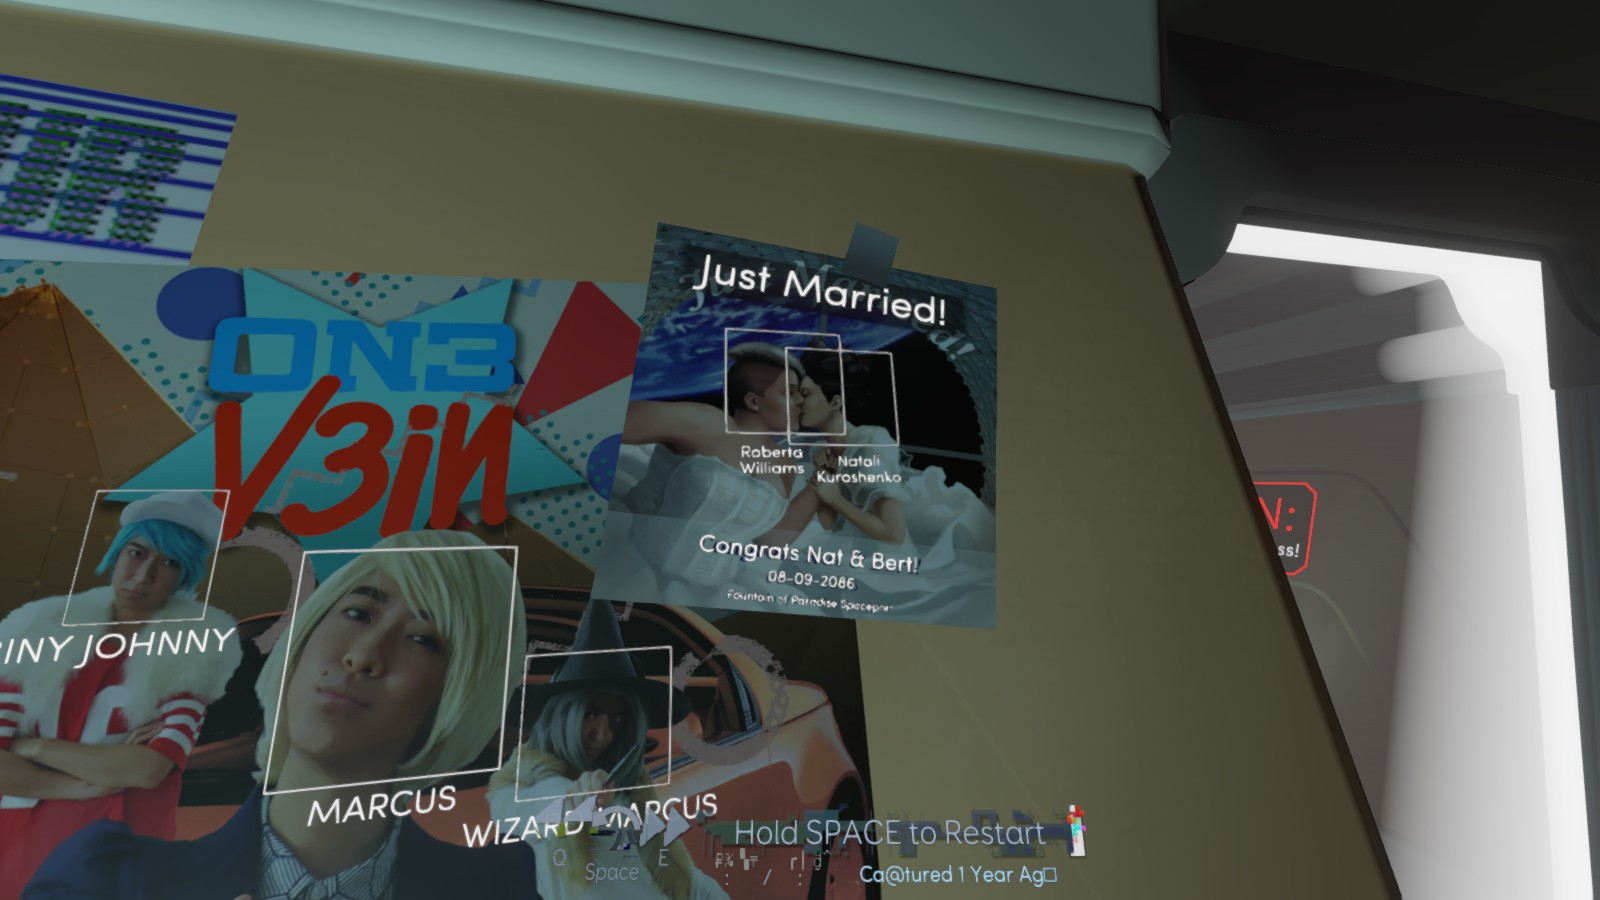 Several posters stuck on a wall, one reads 'Just married'.